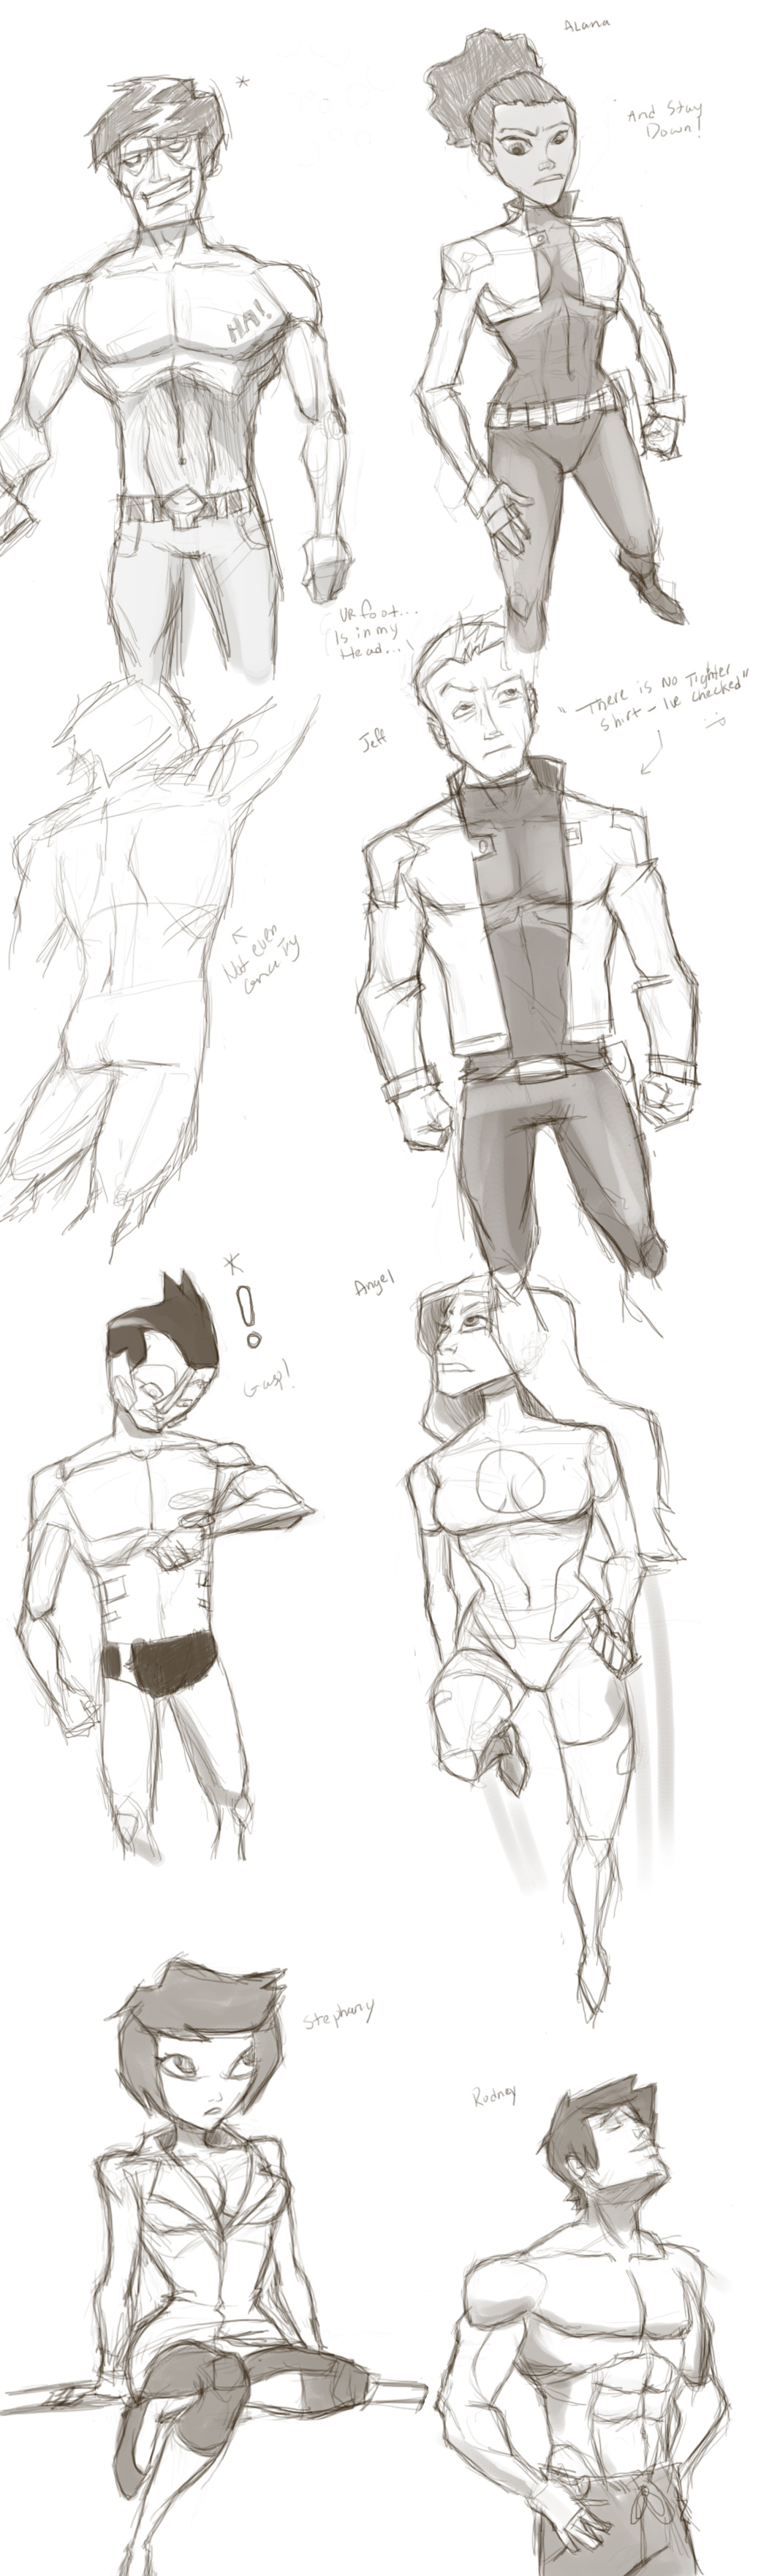 Finished sketches